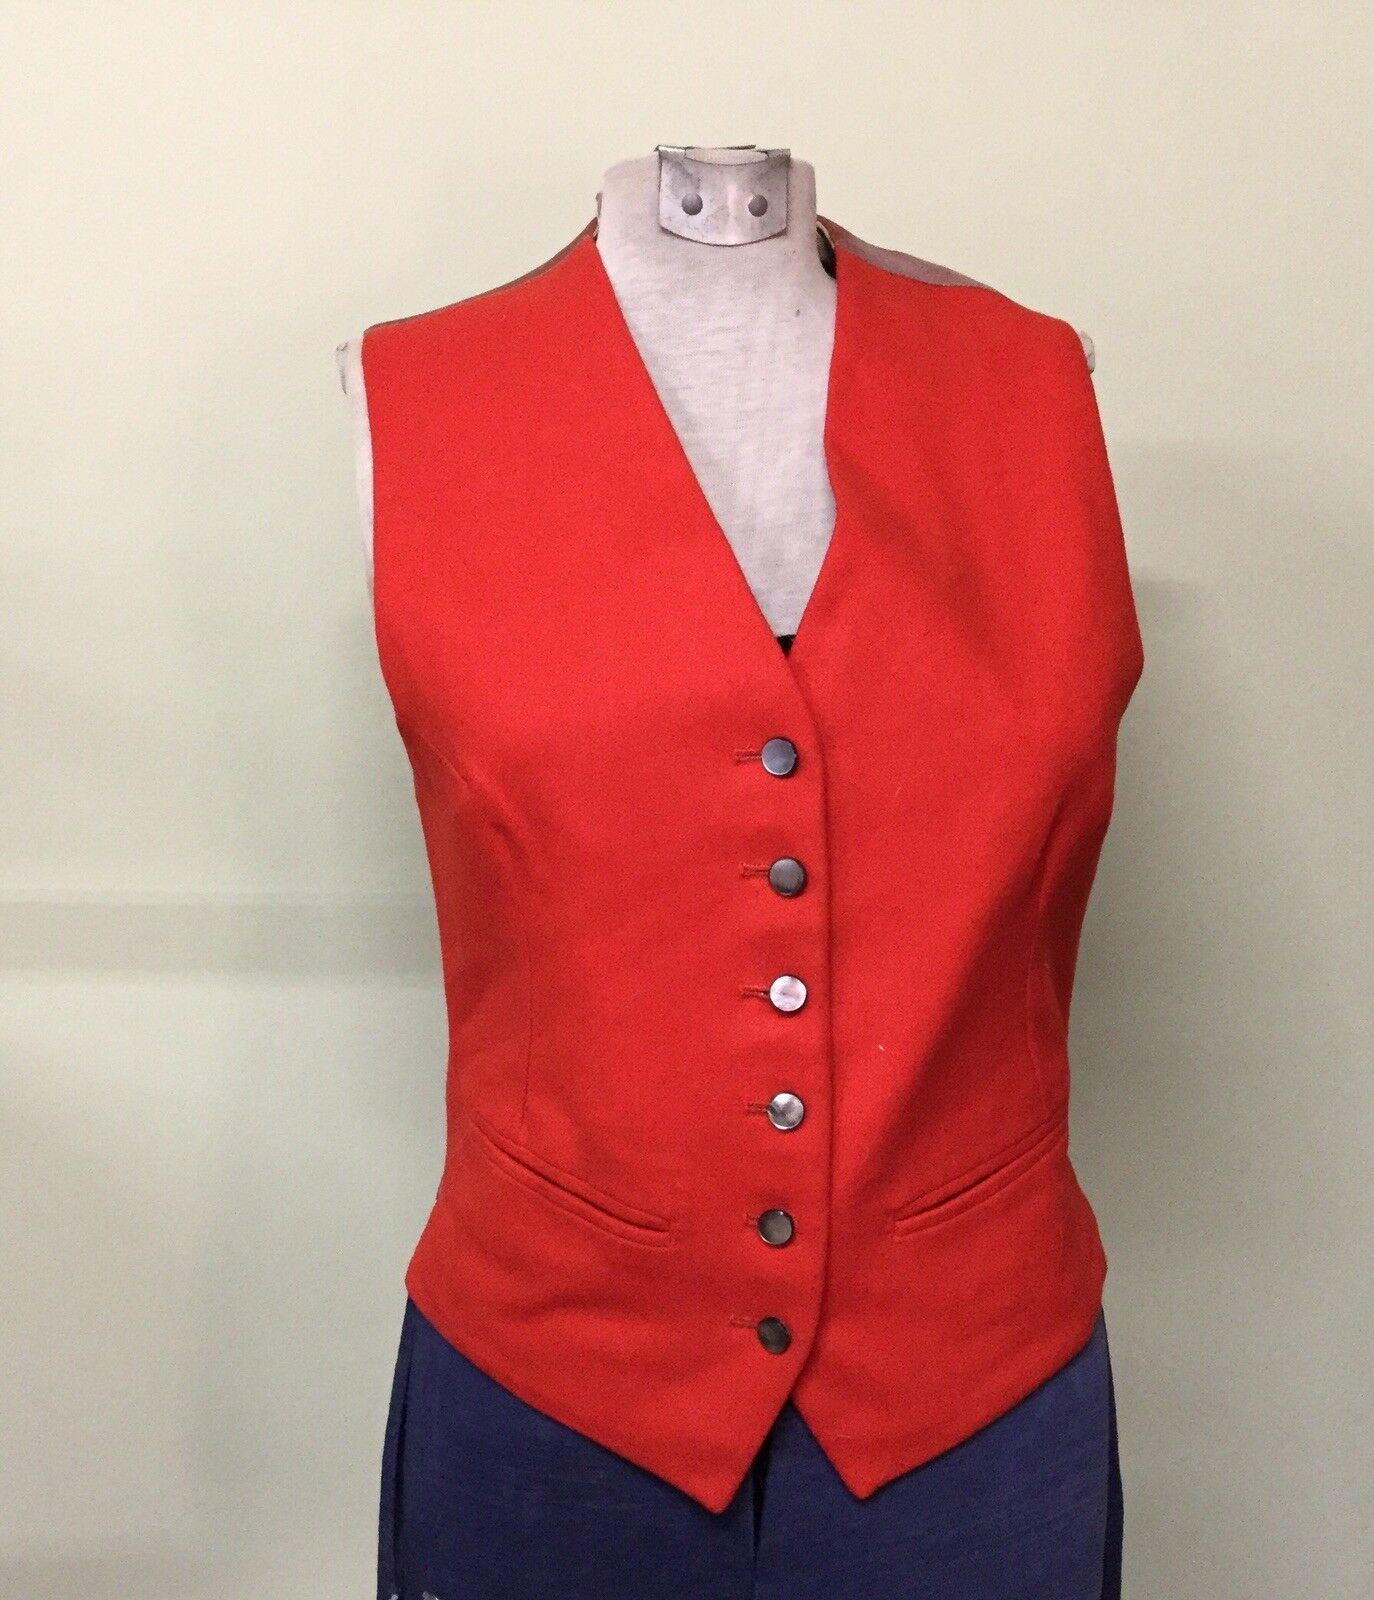 1950's HALL BrossoHERS Ltd Oxford Wool Ladies Riding Equestrain Waistcoat Vest rosso